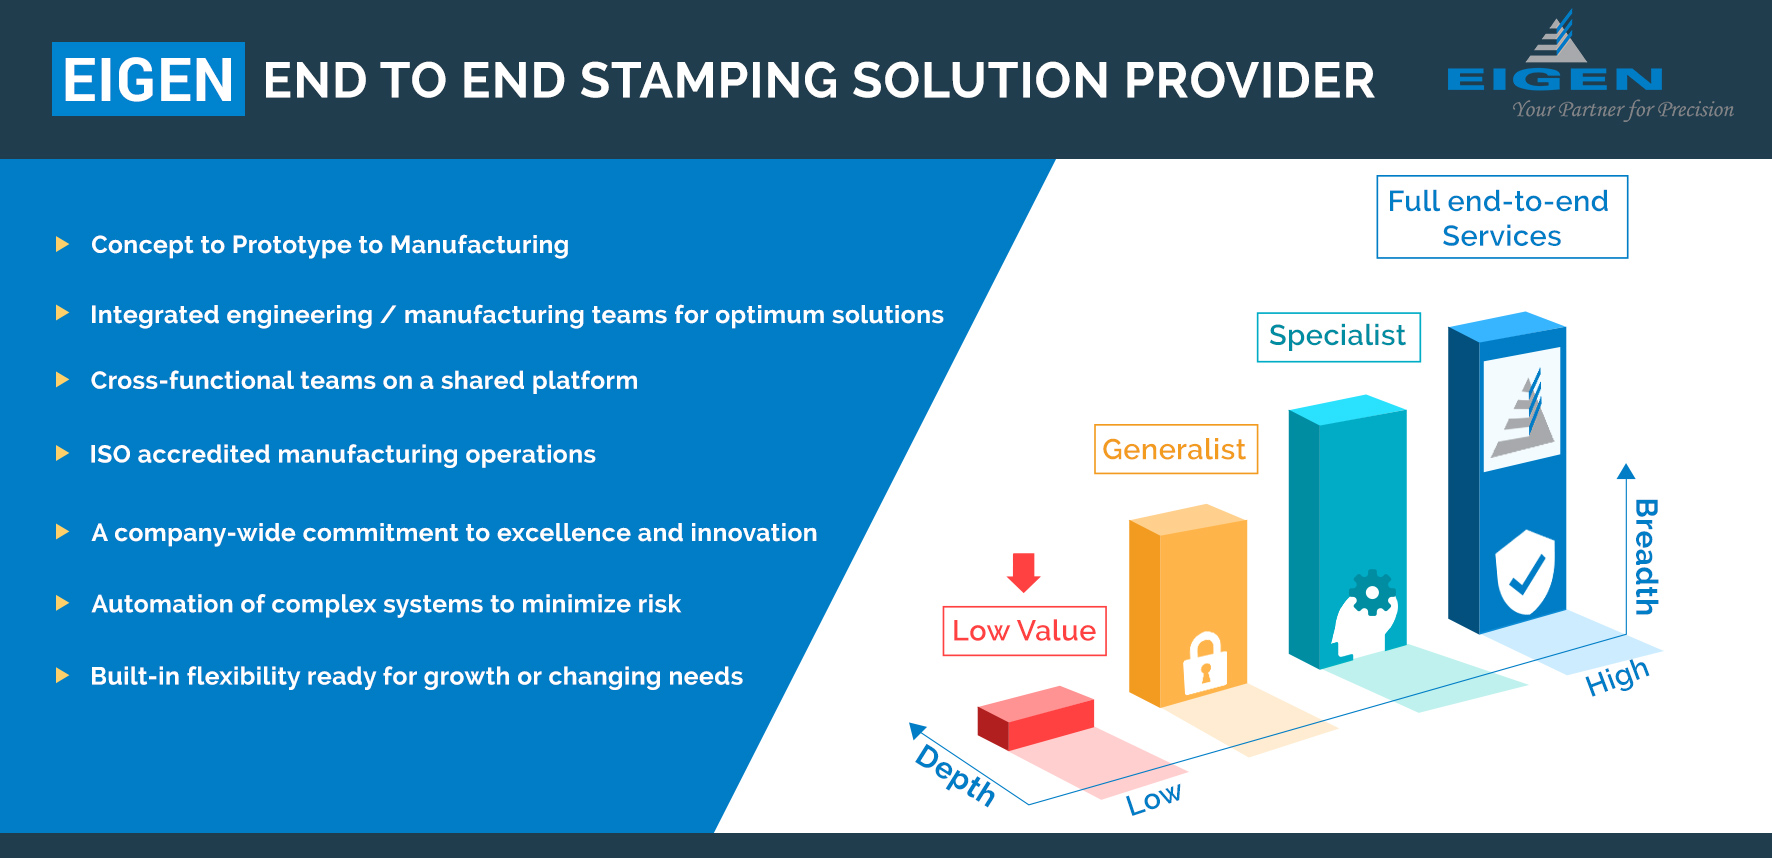 Stamping Solution Provider